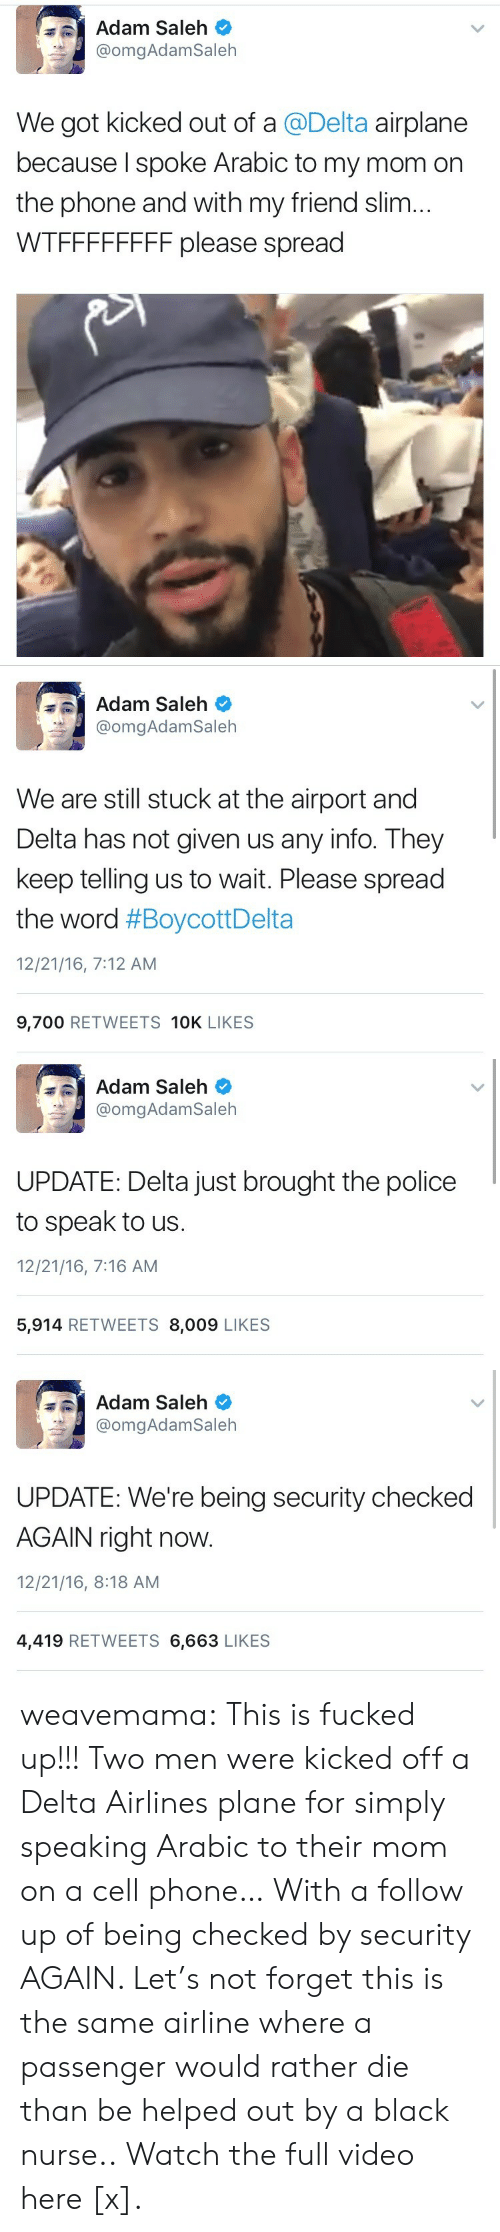 kicked out: Adam Saleh  @omgAdamSaleh  We got kicked out of a @Delta airplane  because I spoke Arabic to my mom on  the phone and with my friend slim...  WTFFFFFFFF please spread   Adam Saleh  @omgAdamSaleh  We are still stuck at the airport and  Delta has not given us any info. They  keep telling us to wait. Please spread  the word #BoycottDelta  12/21/16, 7:12 AM  9,700 RETWEETS 10K LIKES   Adam Saleh  @omgAdam Saleh  UPDATE: Delta just brought the police  to speak to us  12/21/16, 7:16 AM  5,914 RETWEETS 8,009 LIKES   Adam Saleh  @omgAdam Saleh  UPDATE: We're being security checked  AGAIN right now.  12/21/16, 8:18 AM  4,419 RETWEETS 6,663 LIKES weavemama: This is fucked up!!! Two men were kicked off a Delta Airlines plane for simply speaking Arabic to their mom on a cell phone… With a follow up of being checked by security AGAIN. Let's not forget this is the same airline where a passenger would rather die than be helped out by a black nurse.. Watch the full video here [x].